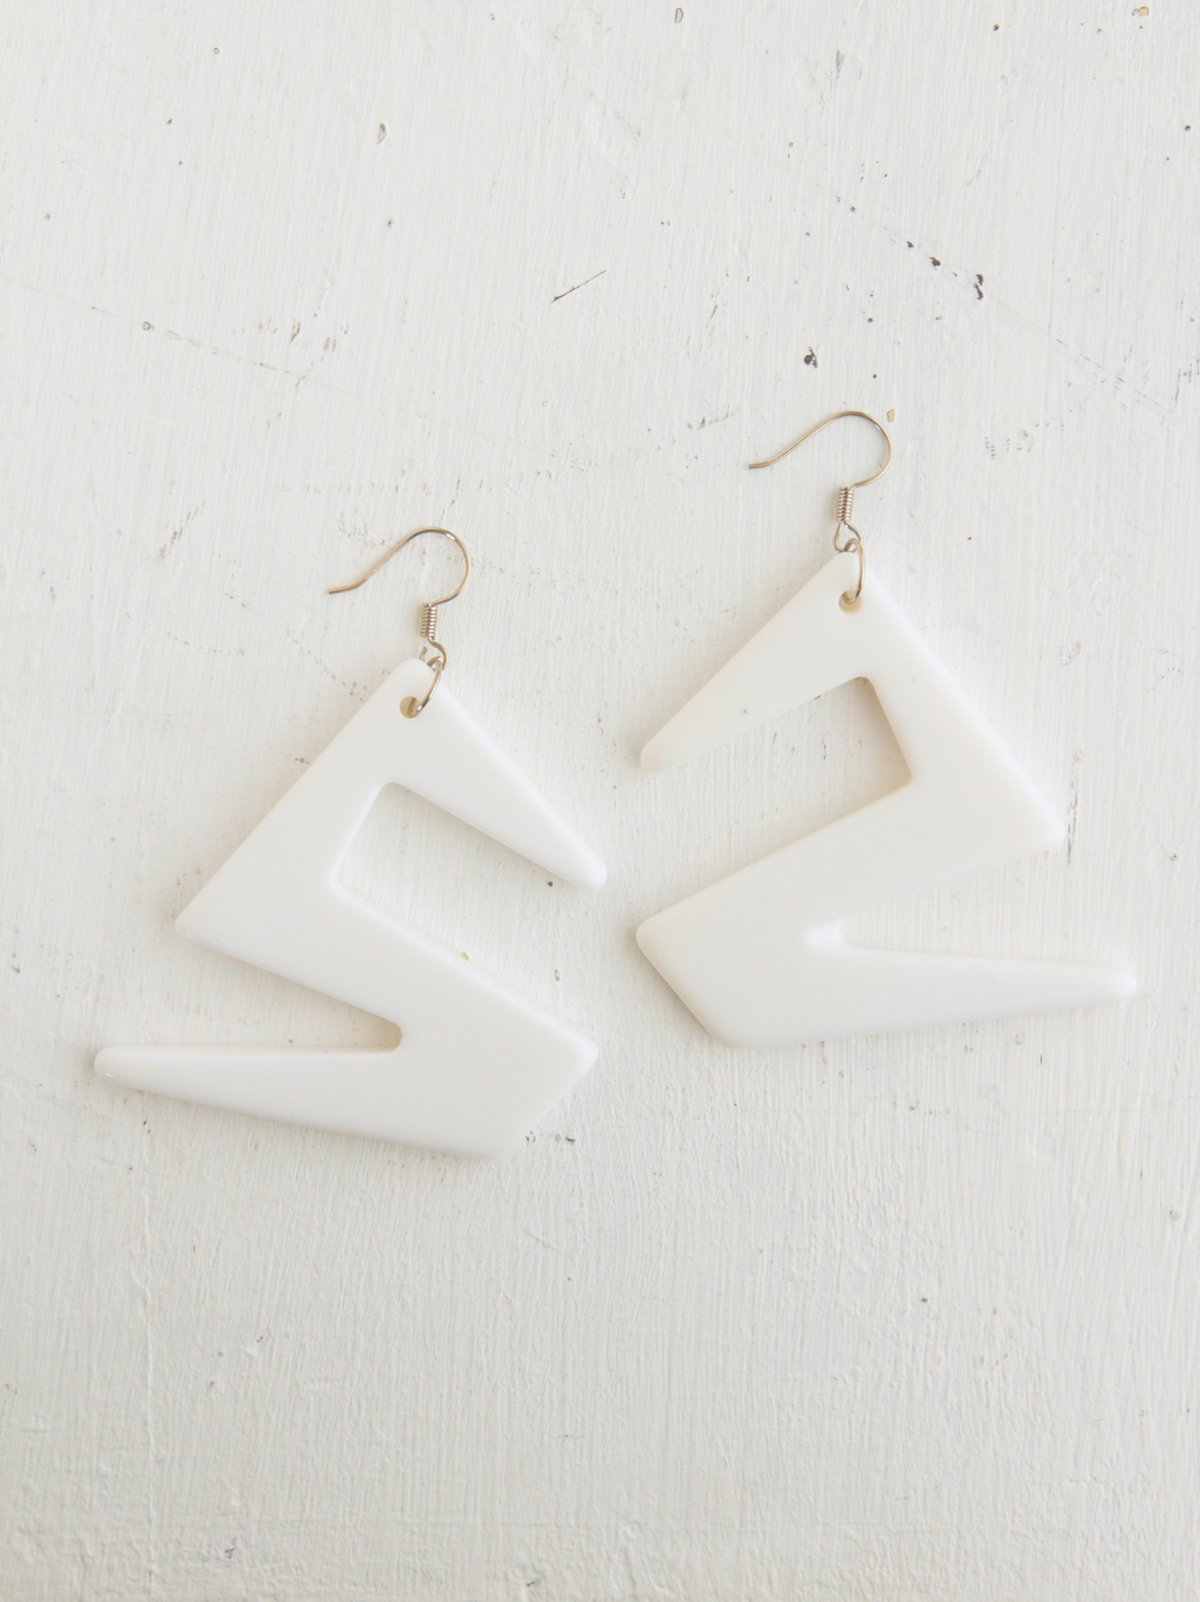 Vintage White Geomtric Dangle Earrings